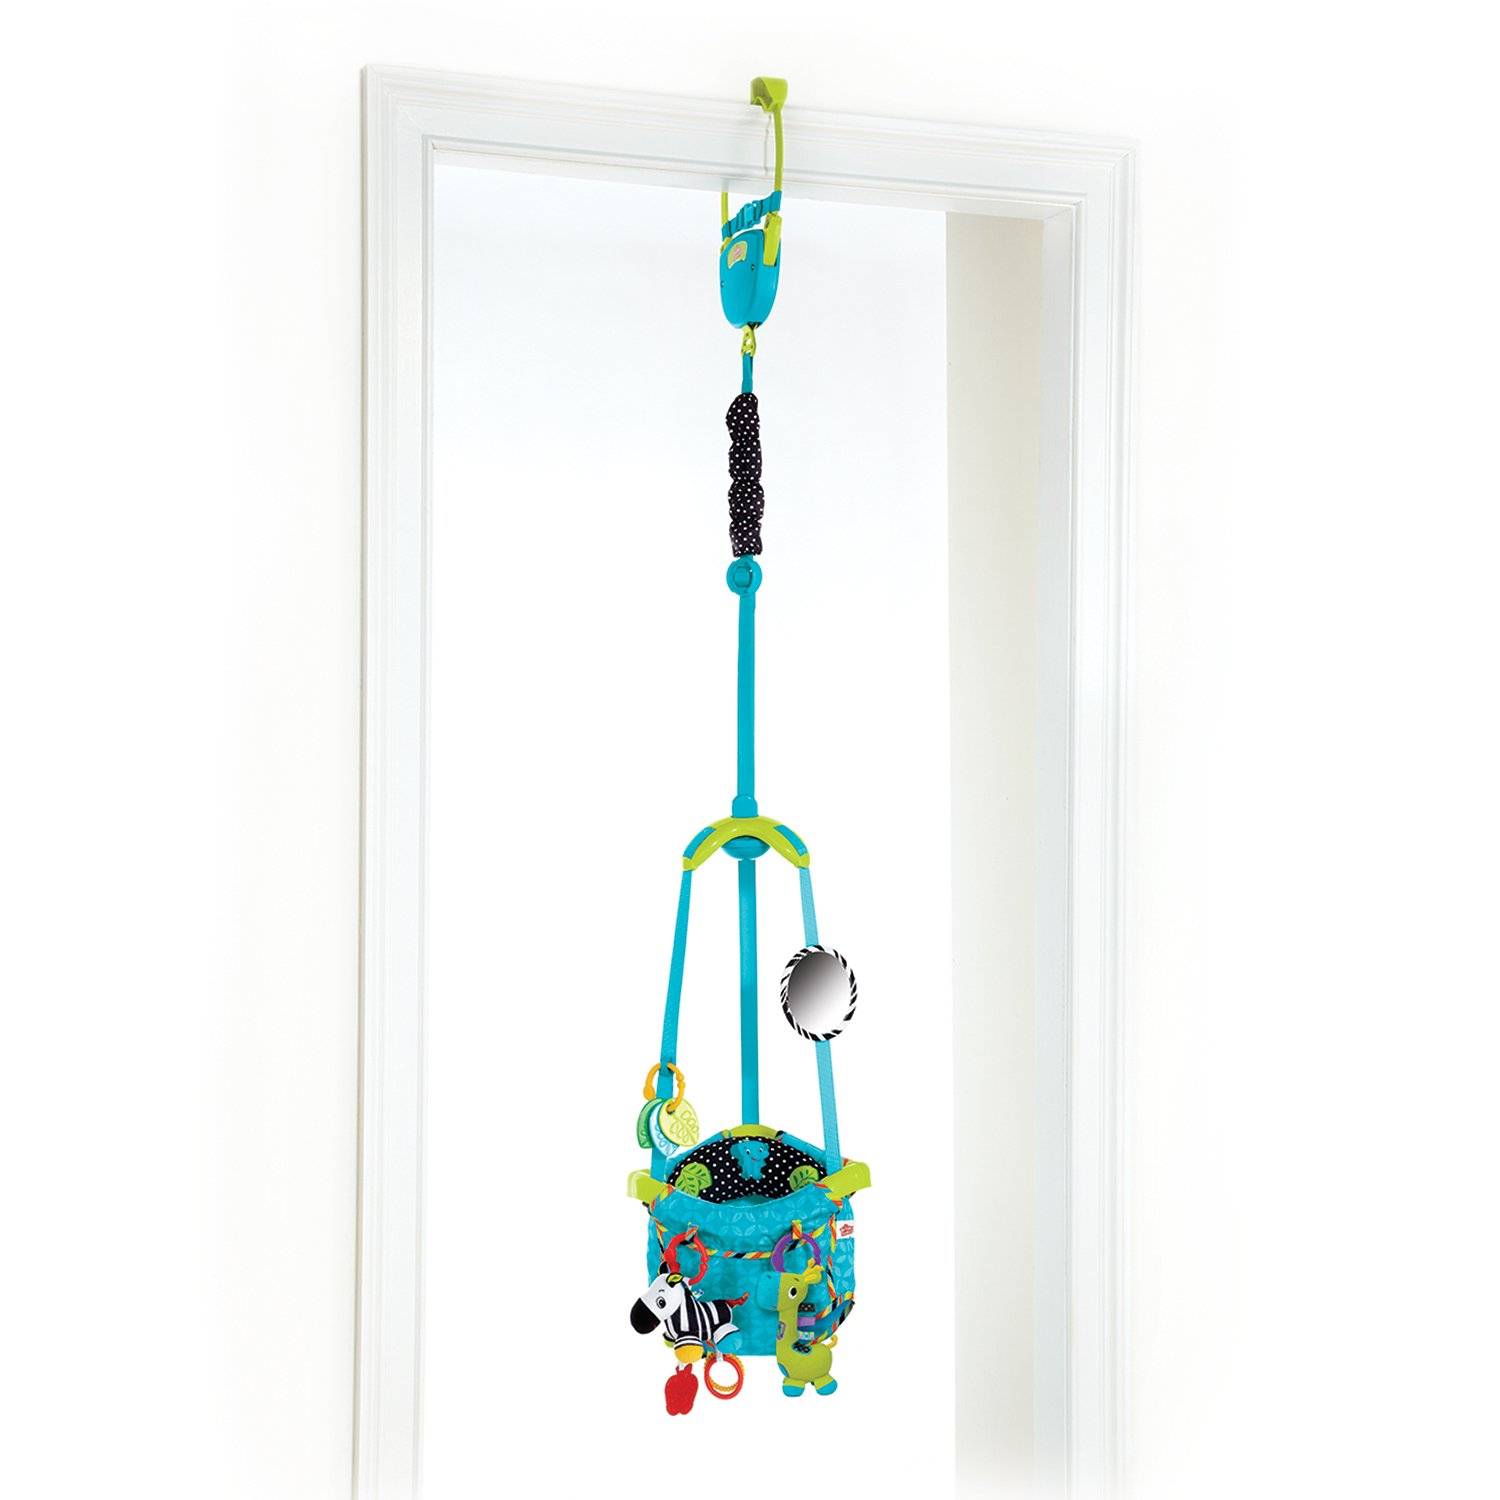 Sauteur de Porte Deluxe Spring and Bounce Bright Starts 60138